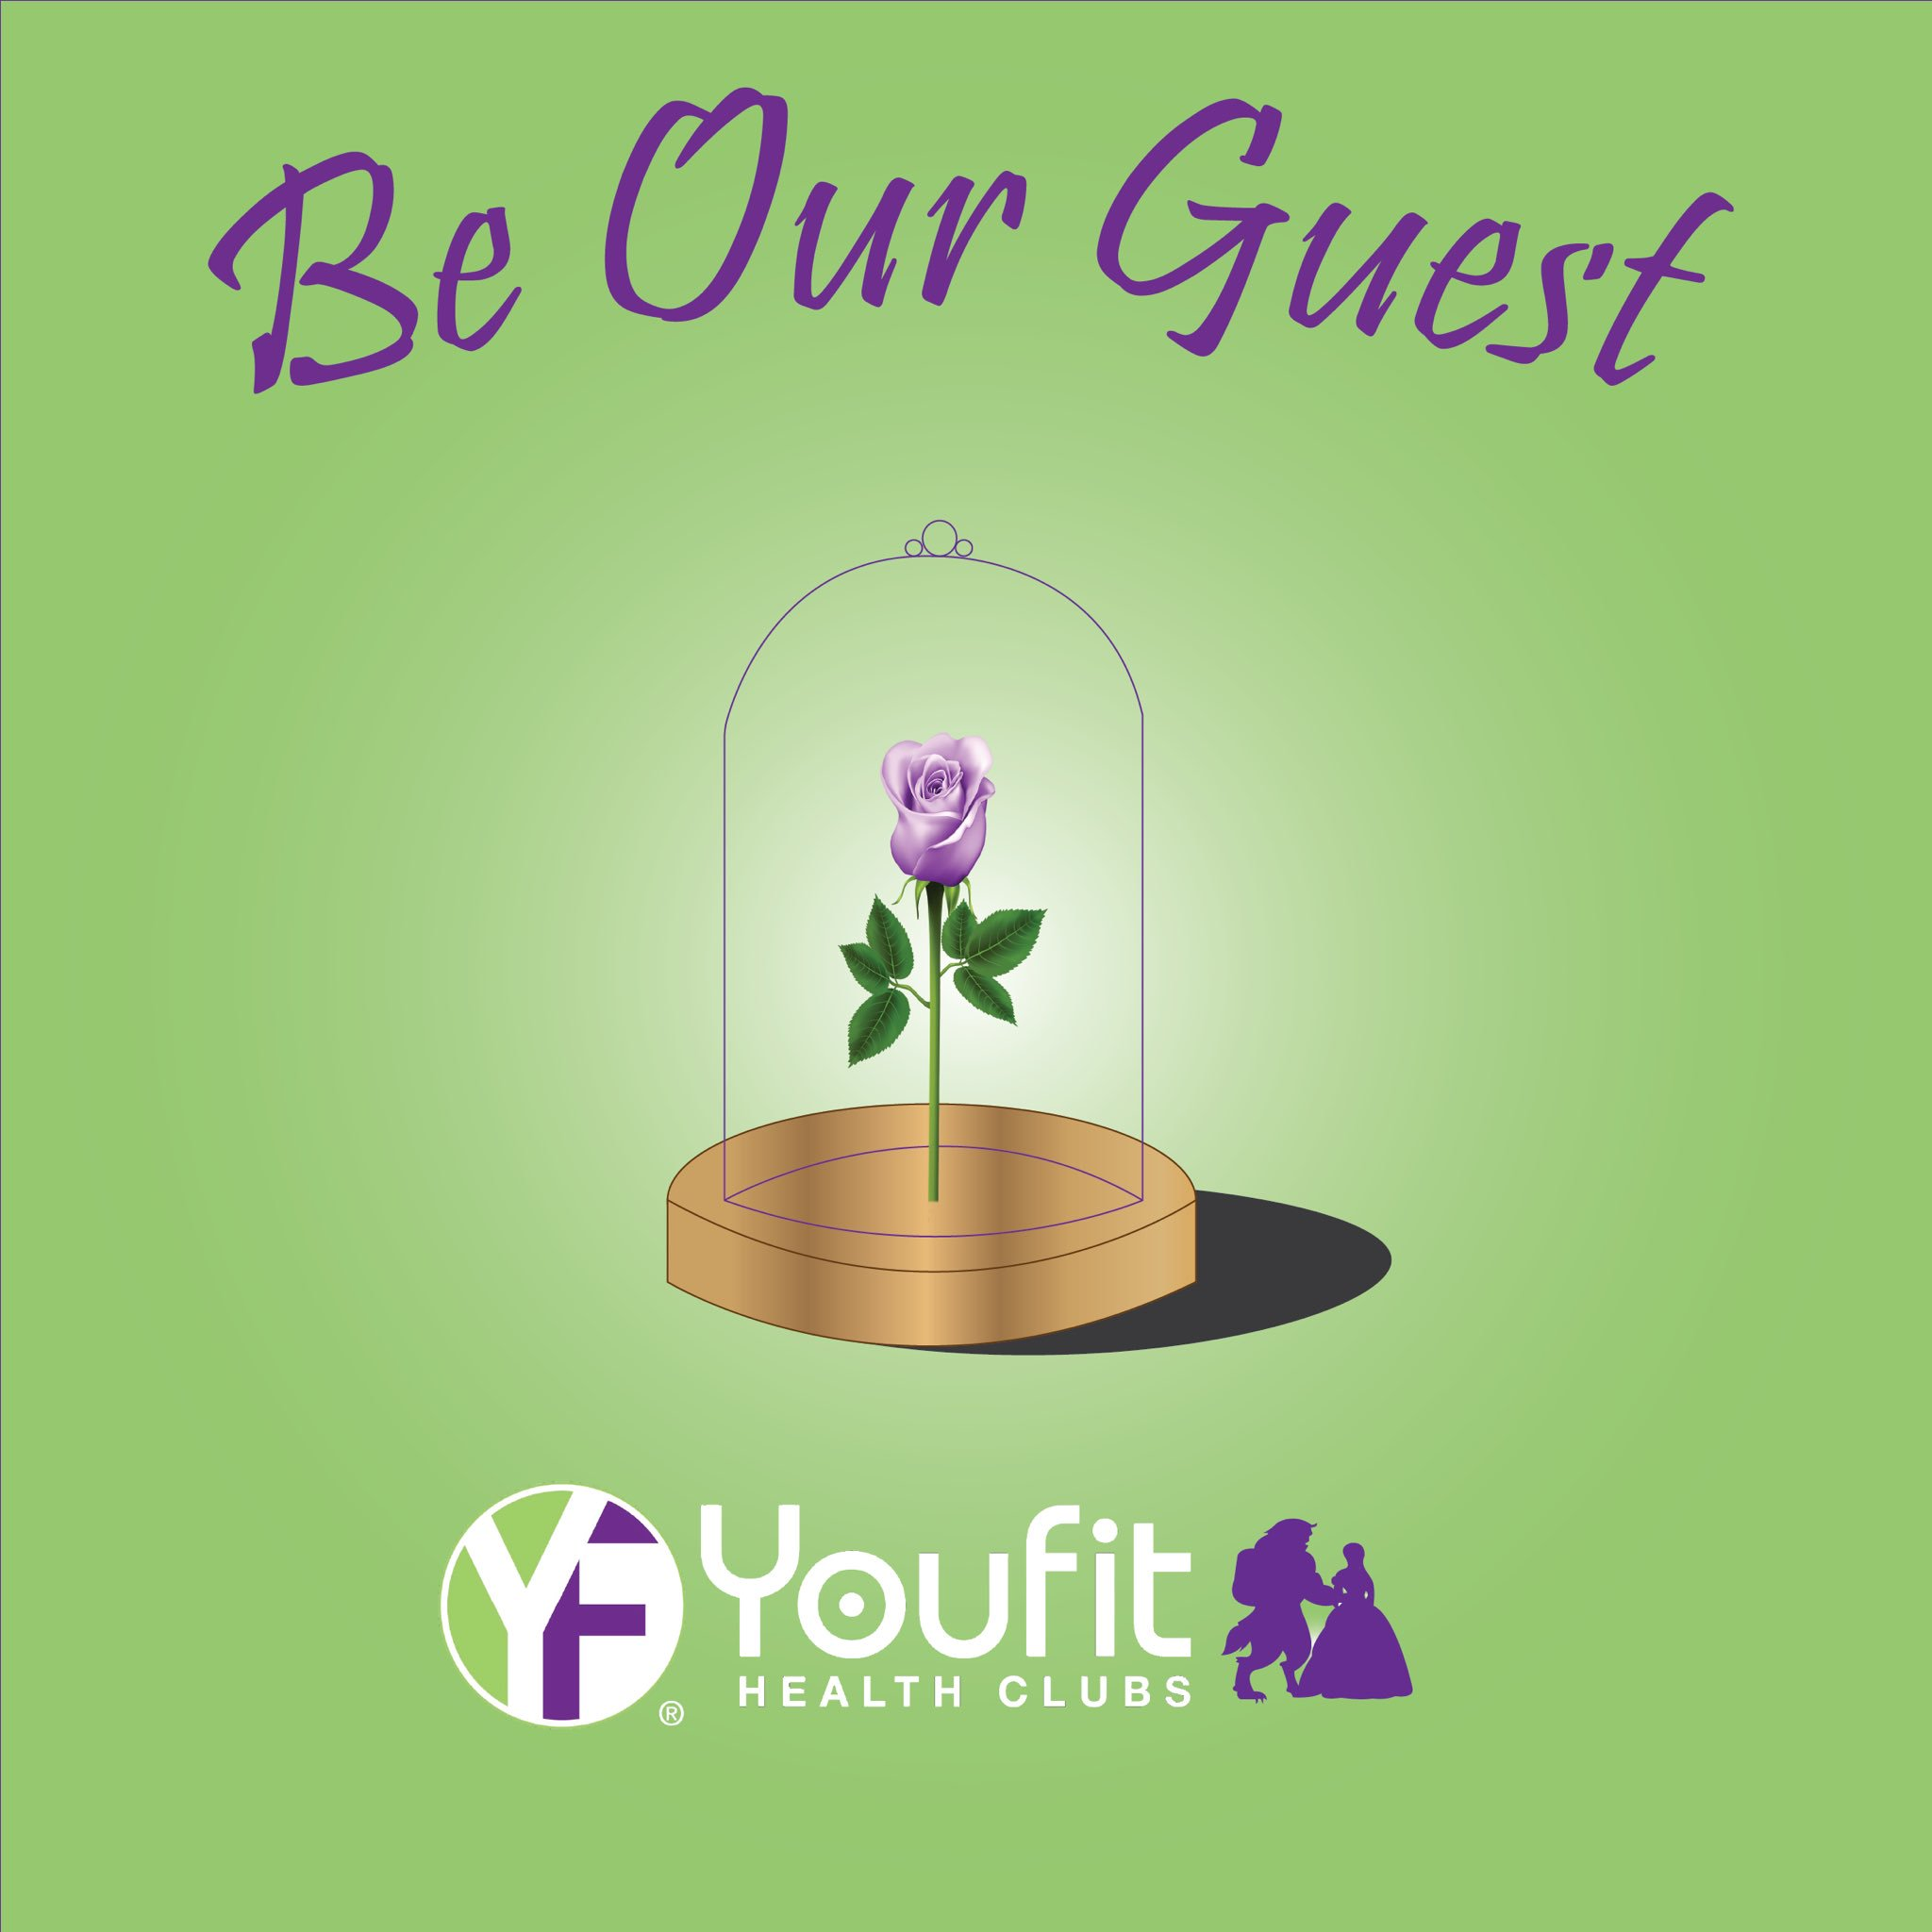 youfit free guest pass